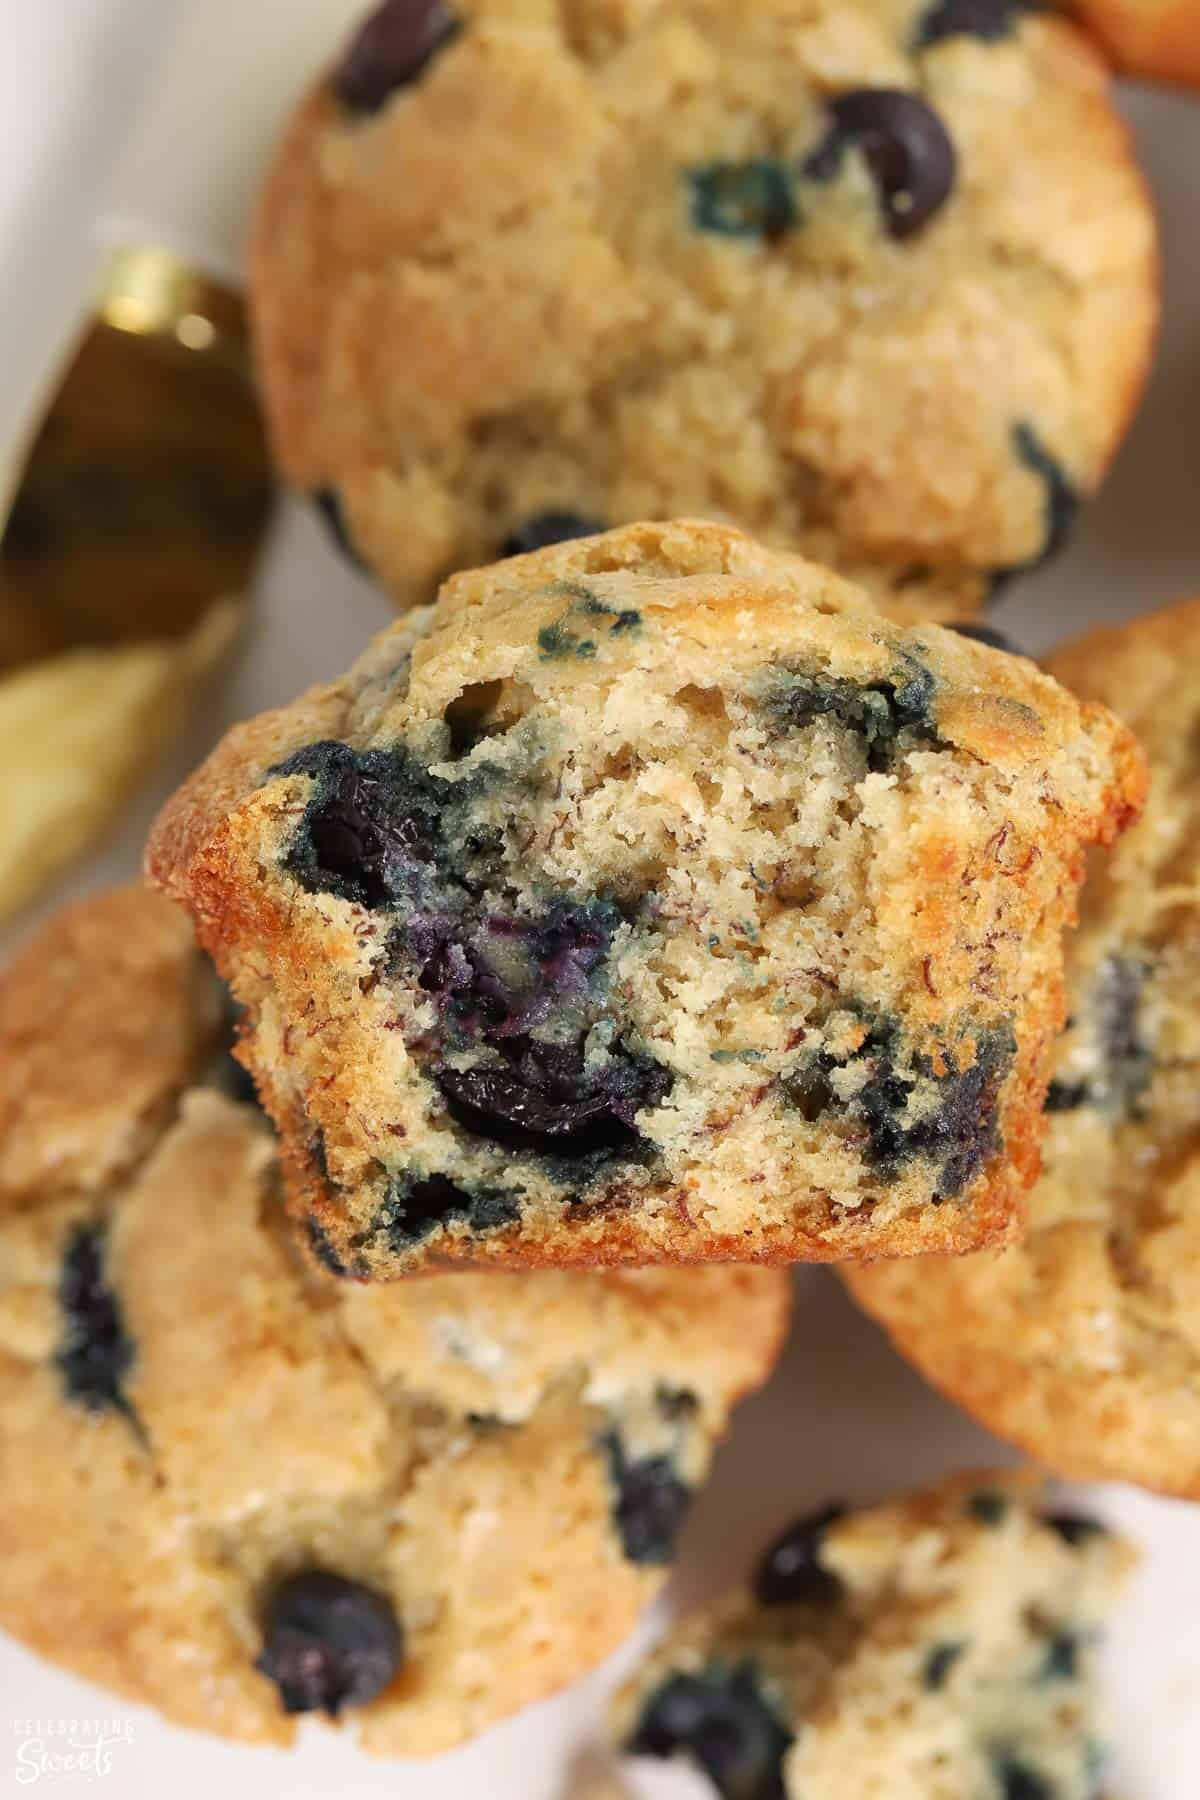 Closeup of blueberry banana muffin with a bite taken out of it.